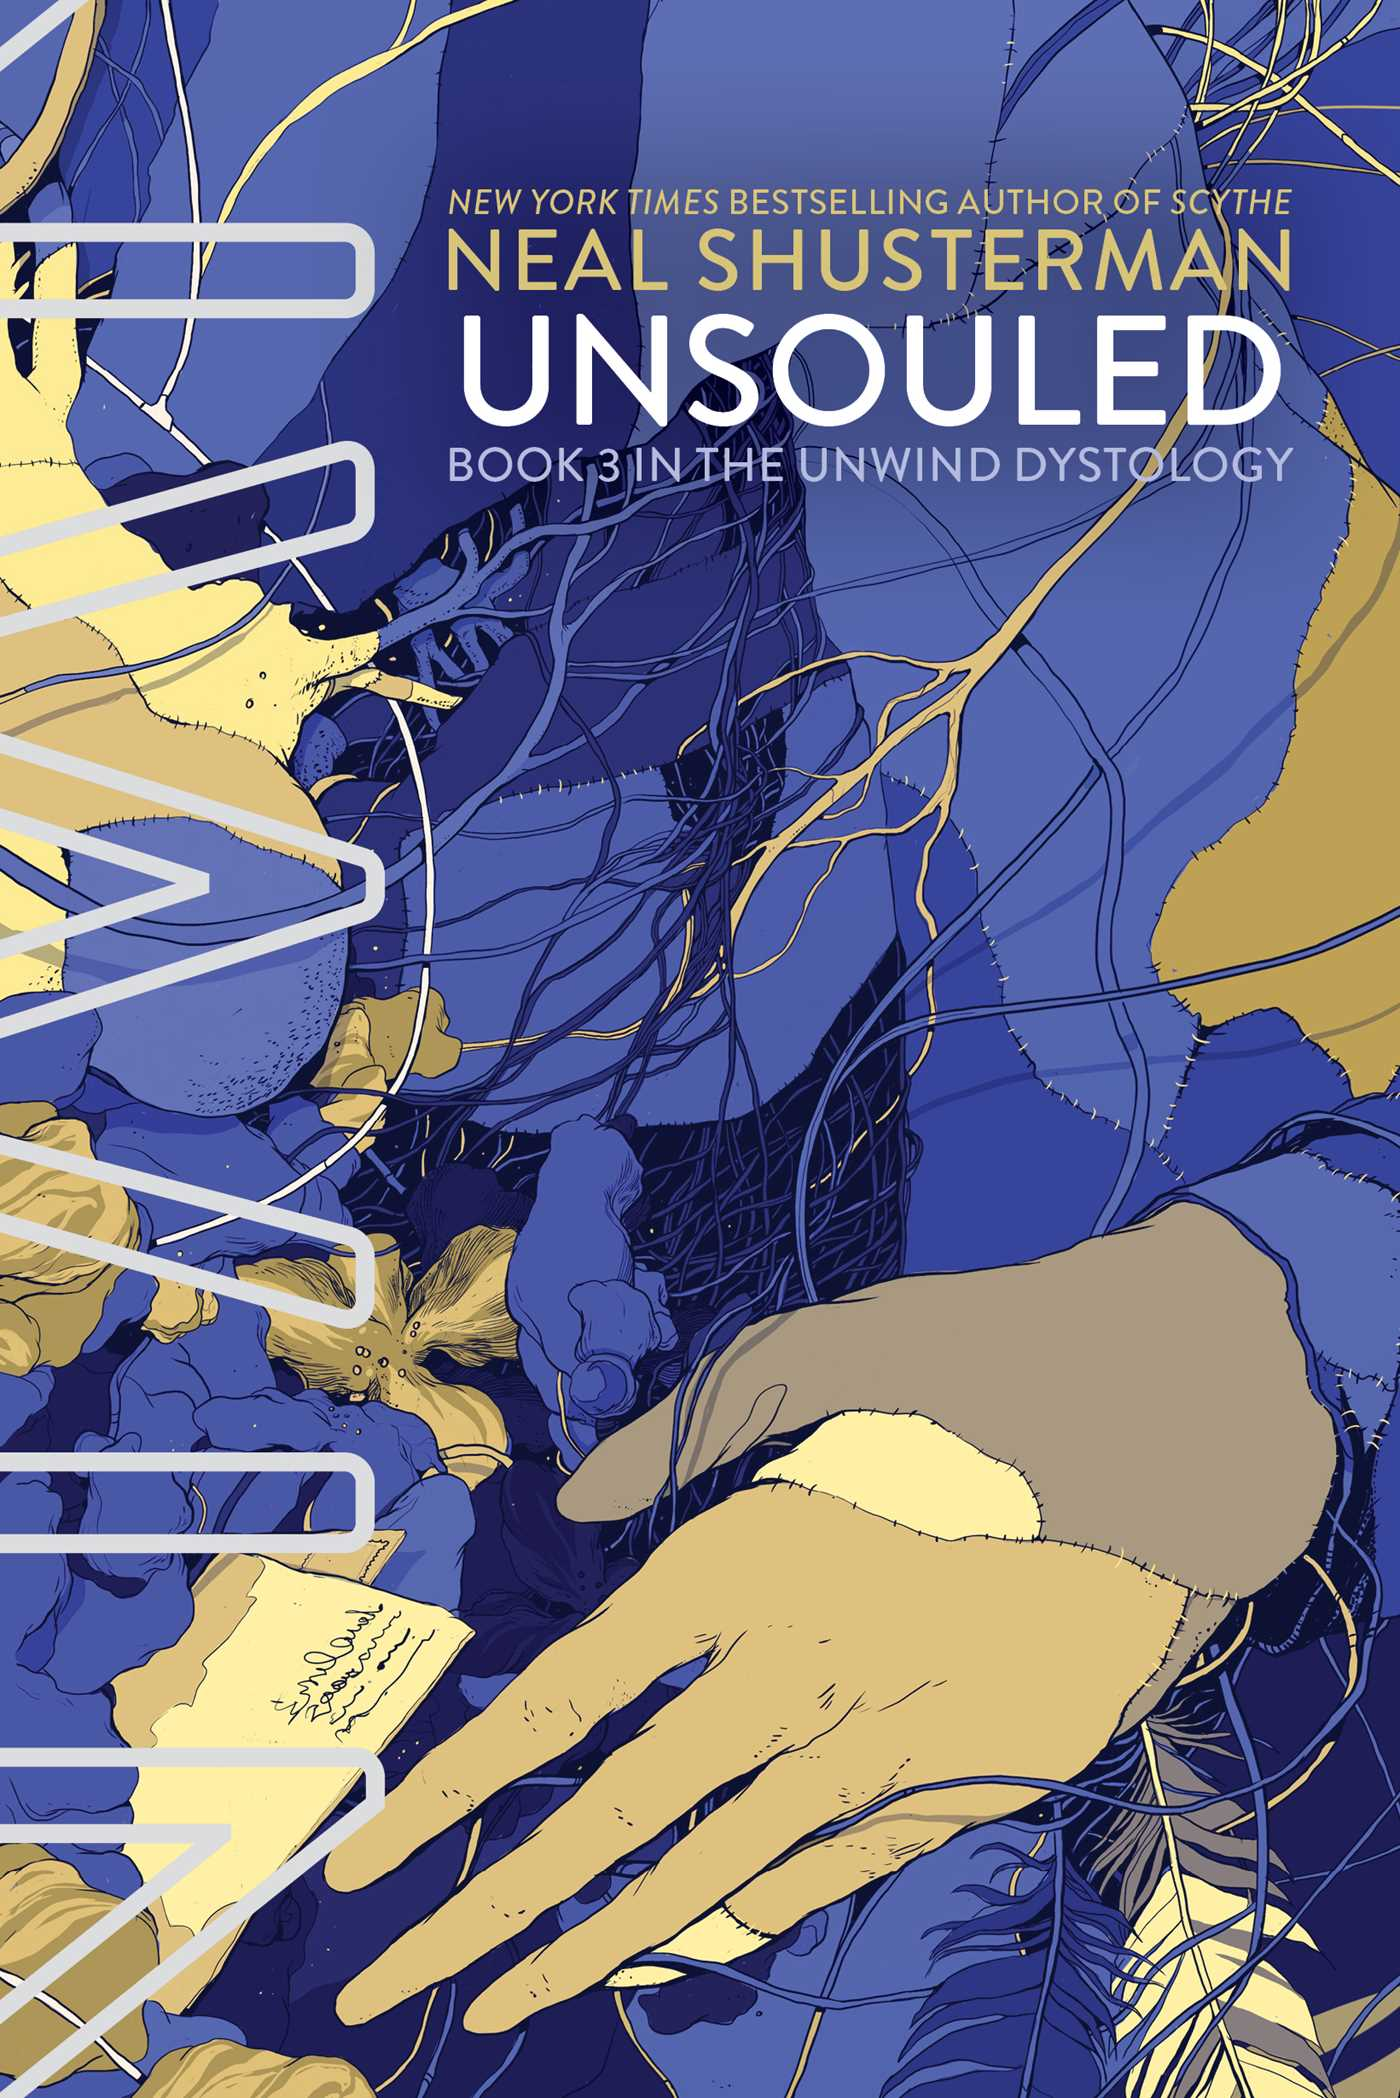 Unsouled-9781442423718_hr